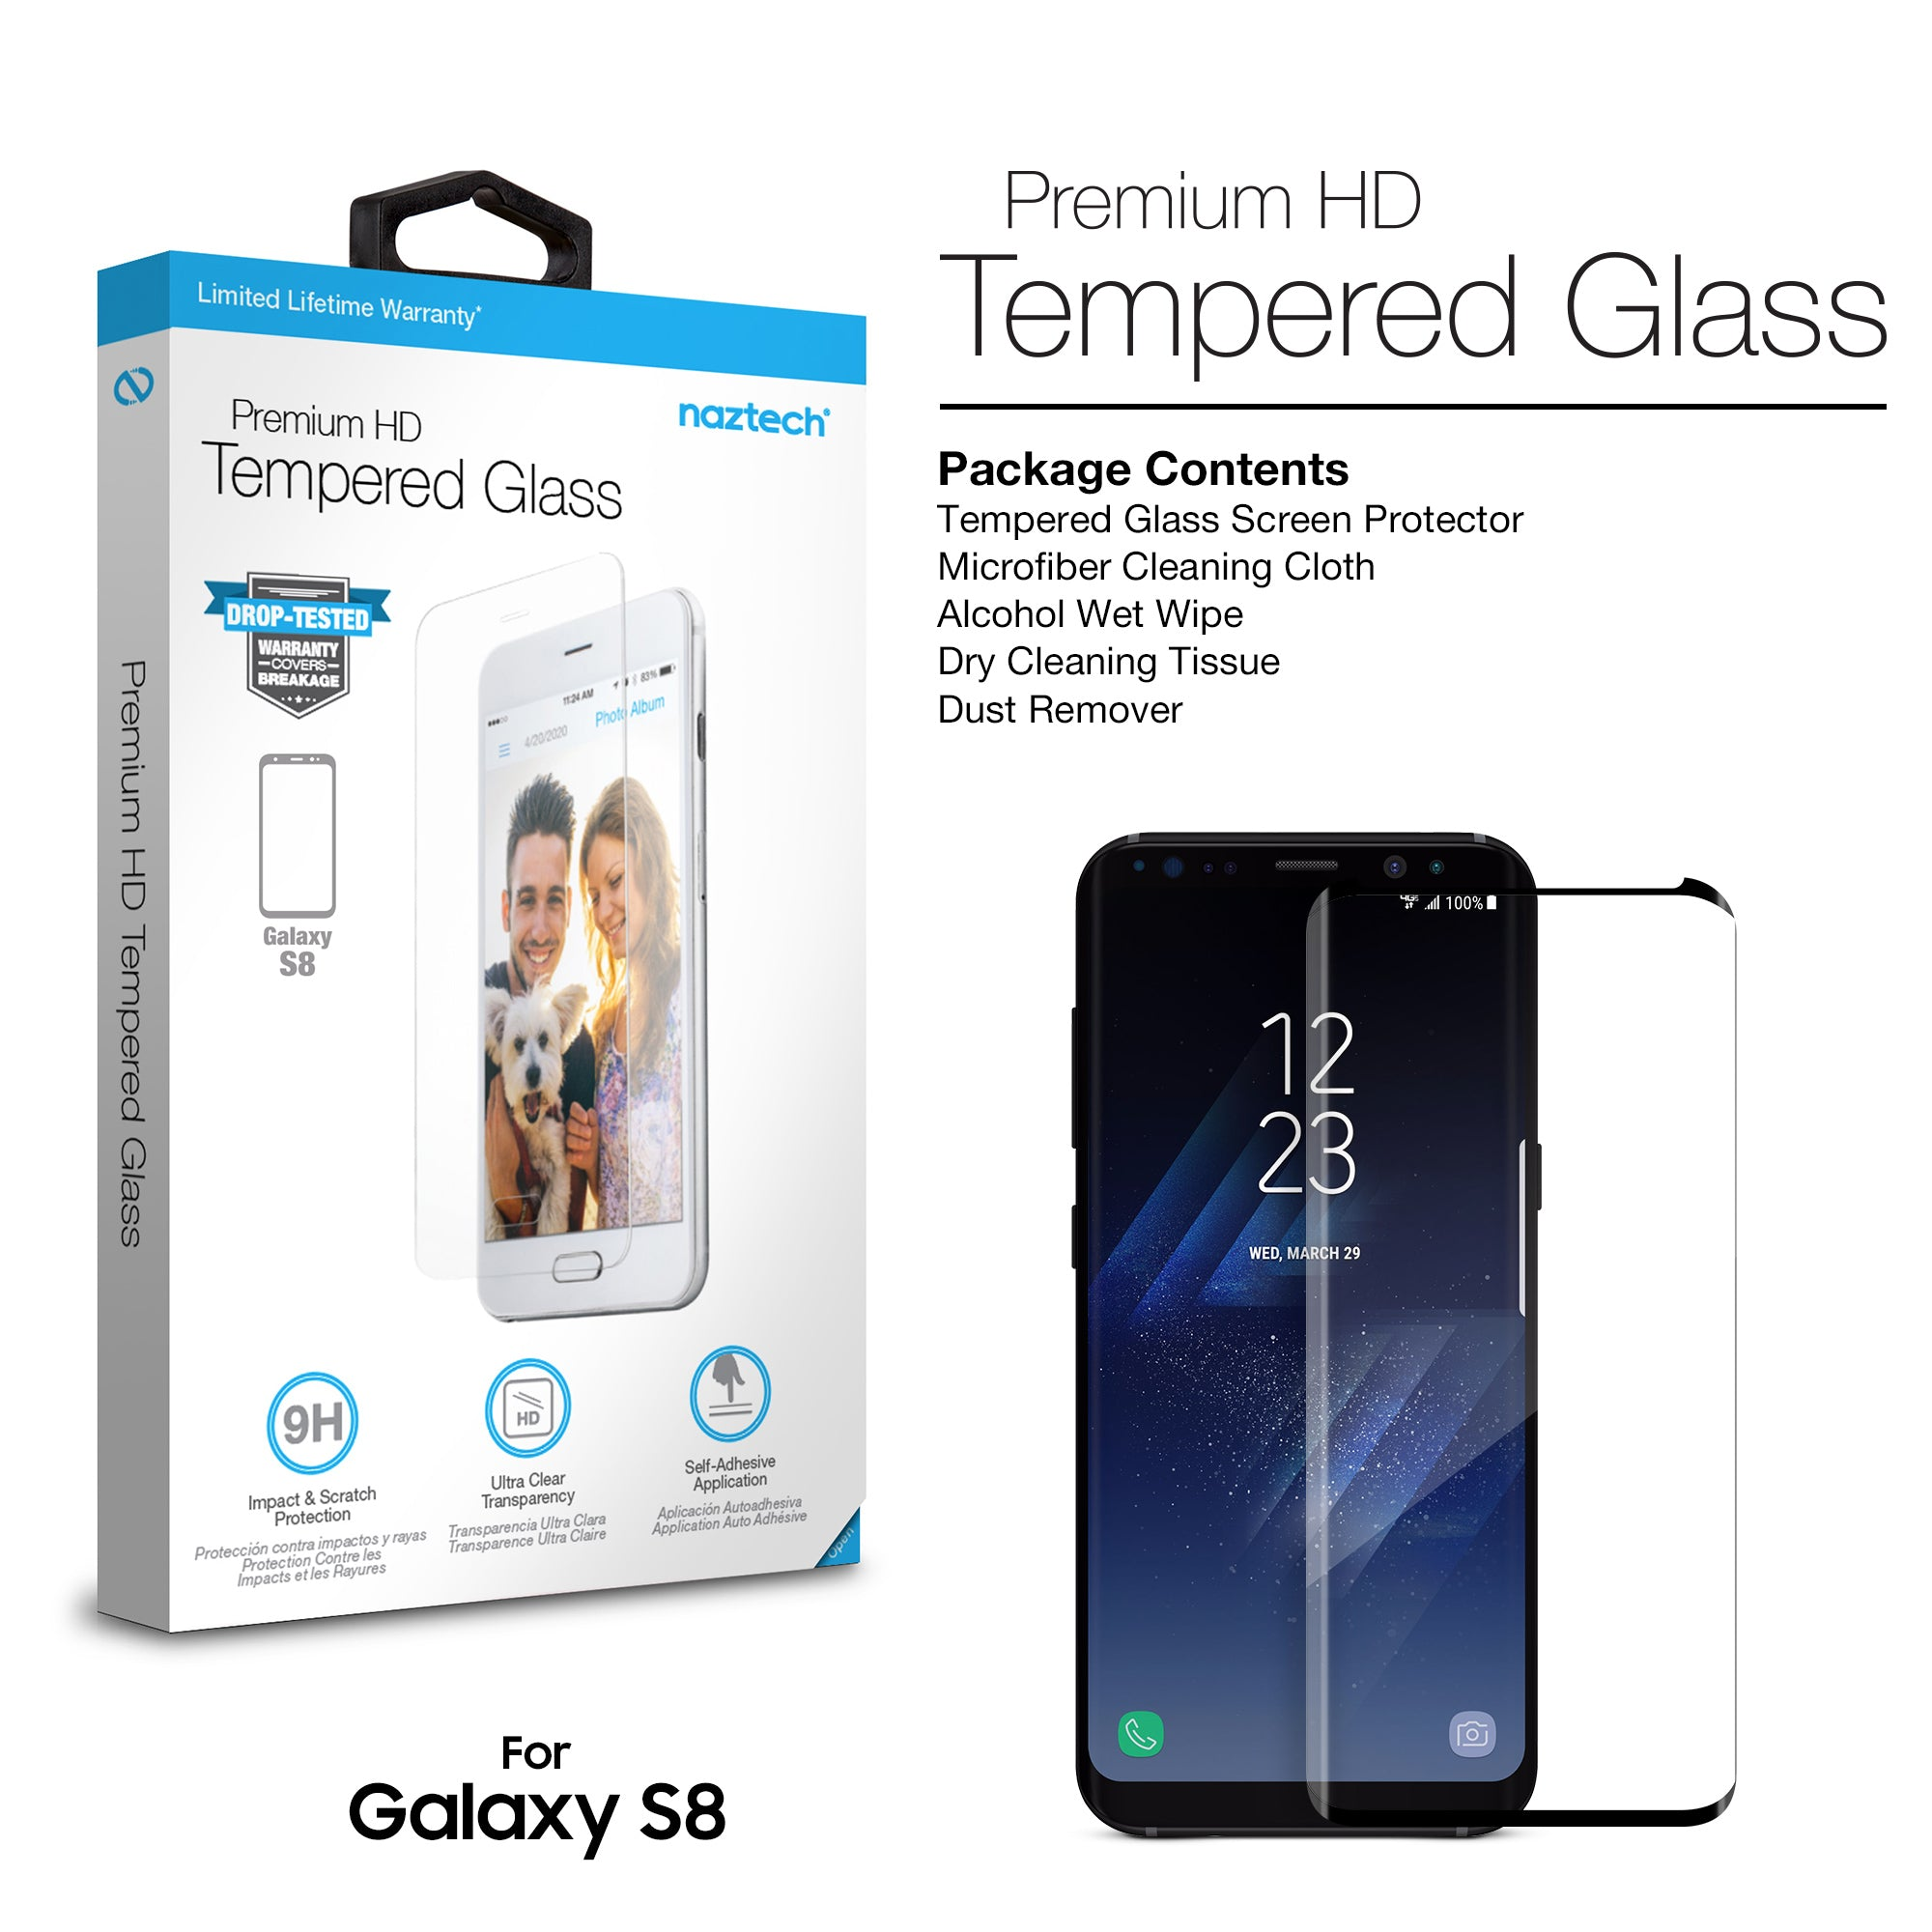 Premium HD Tempered Glass Screen Protector for Galaxy S8